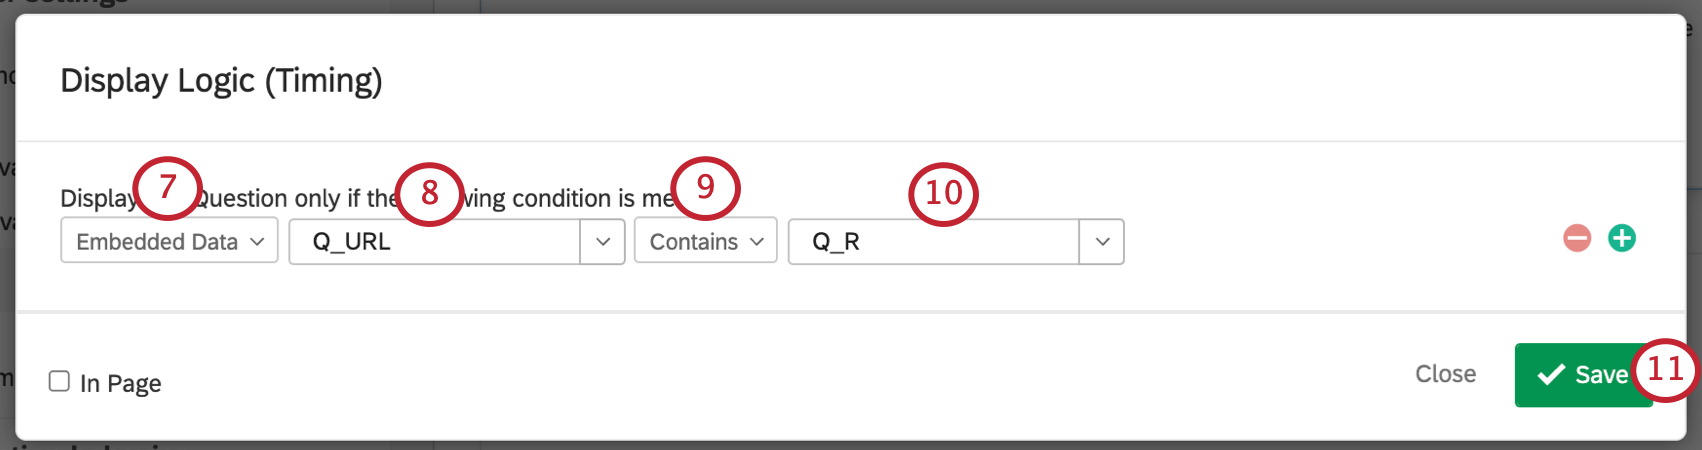 Q_URL containing Q_R as the embedded data element that will cause the question to display